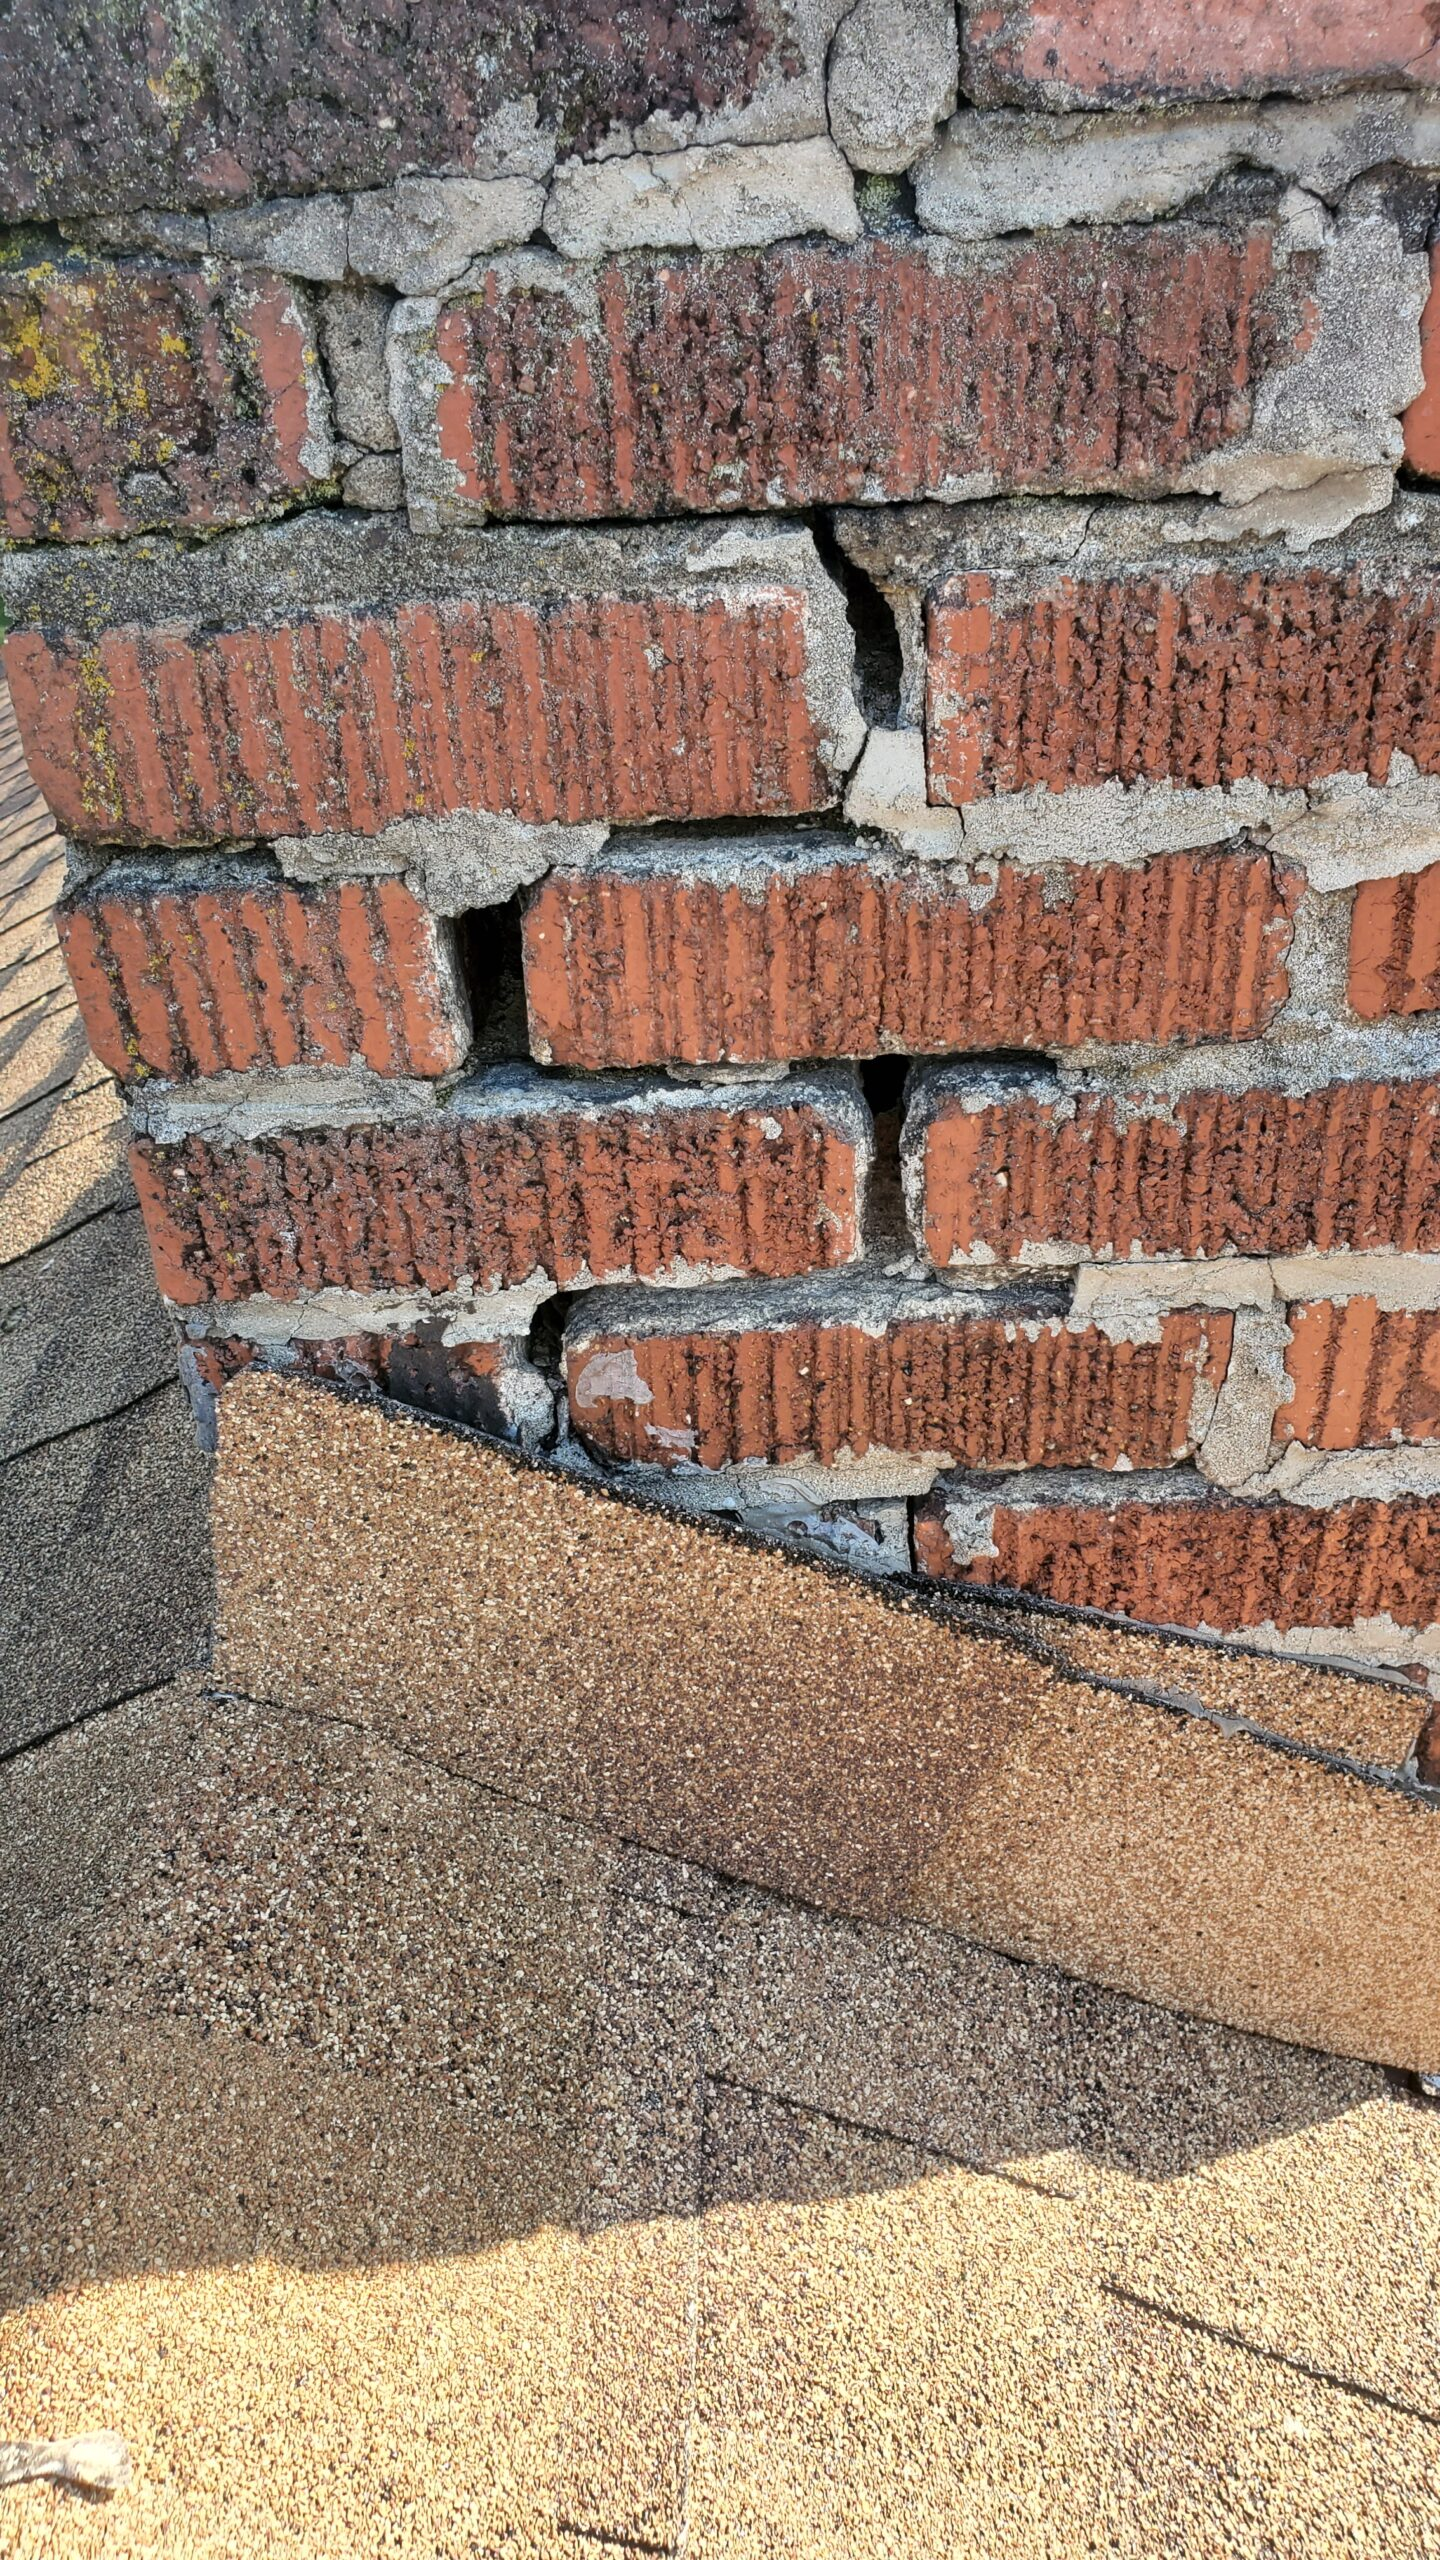 This is a picture of a small brick chimney on a roof and the bricks are starting to come apart and mortar is coming out between them